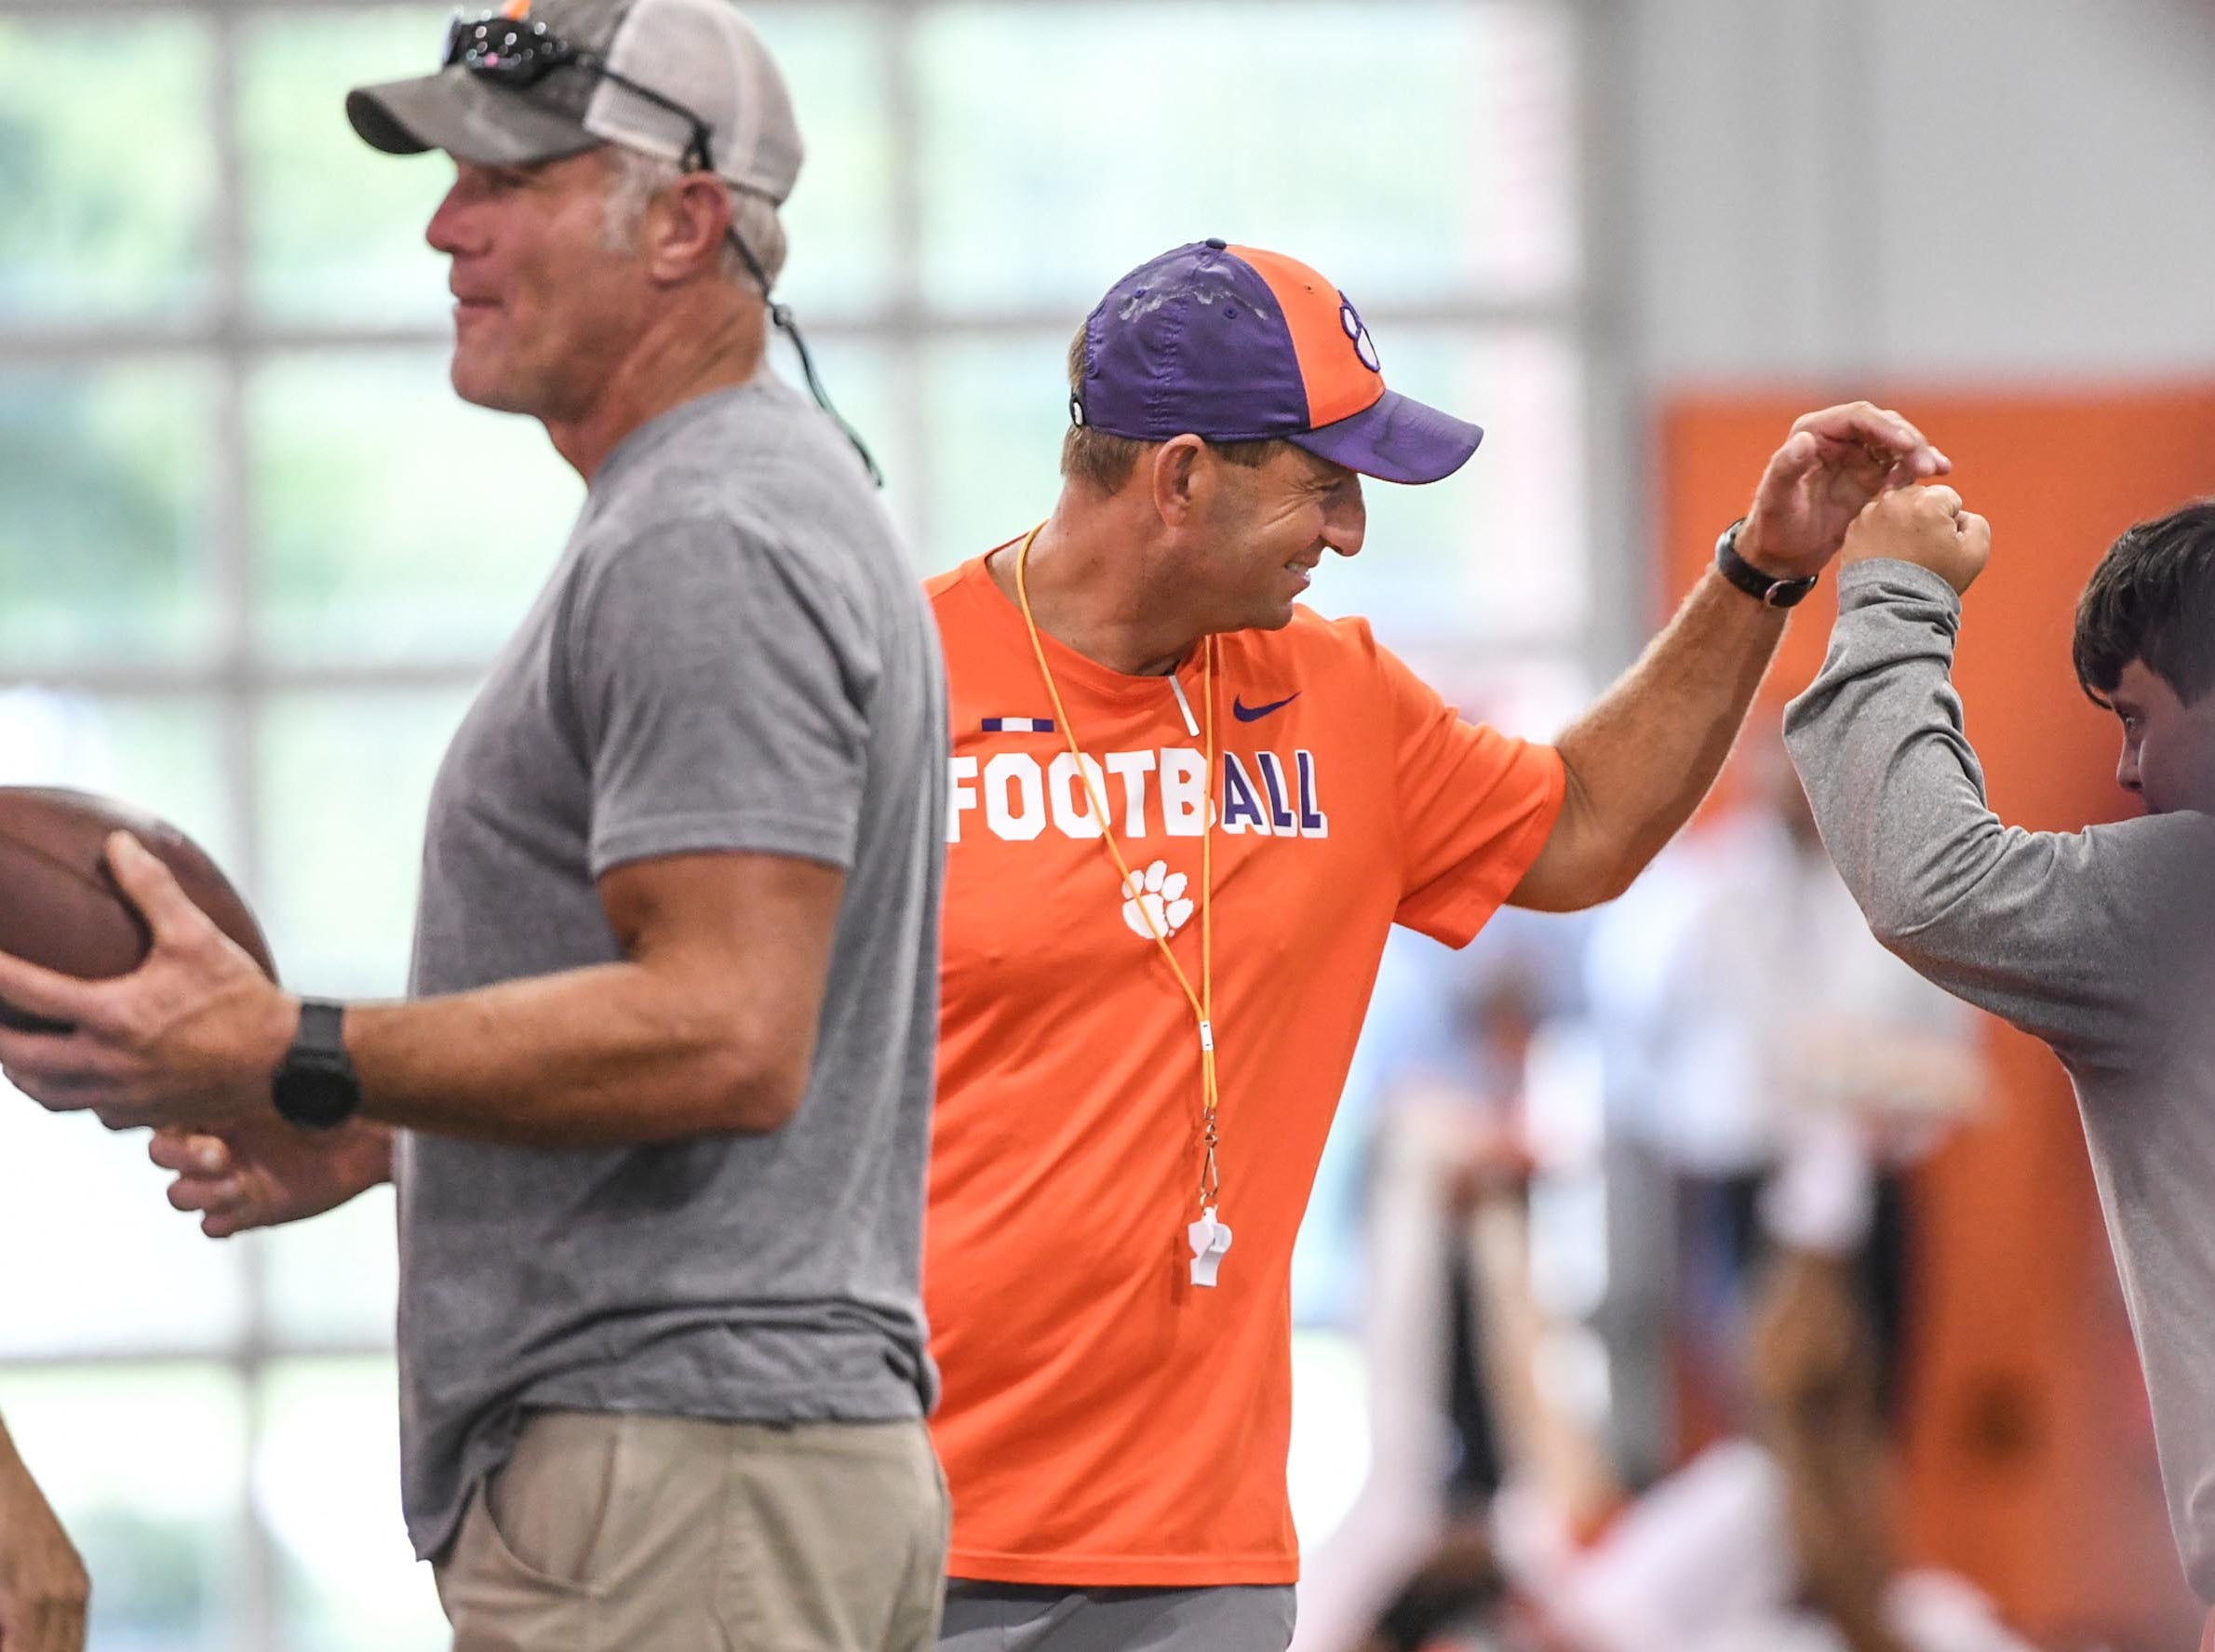 Brett Favre, left, stands near Clemson head coach Dabo Swinney fist bumping Dave Saville during fall practice in Clemson on Wednesday.